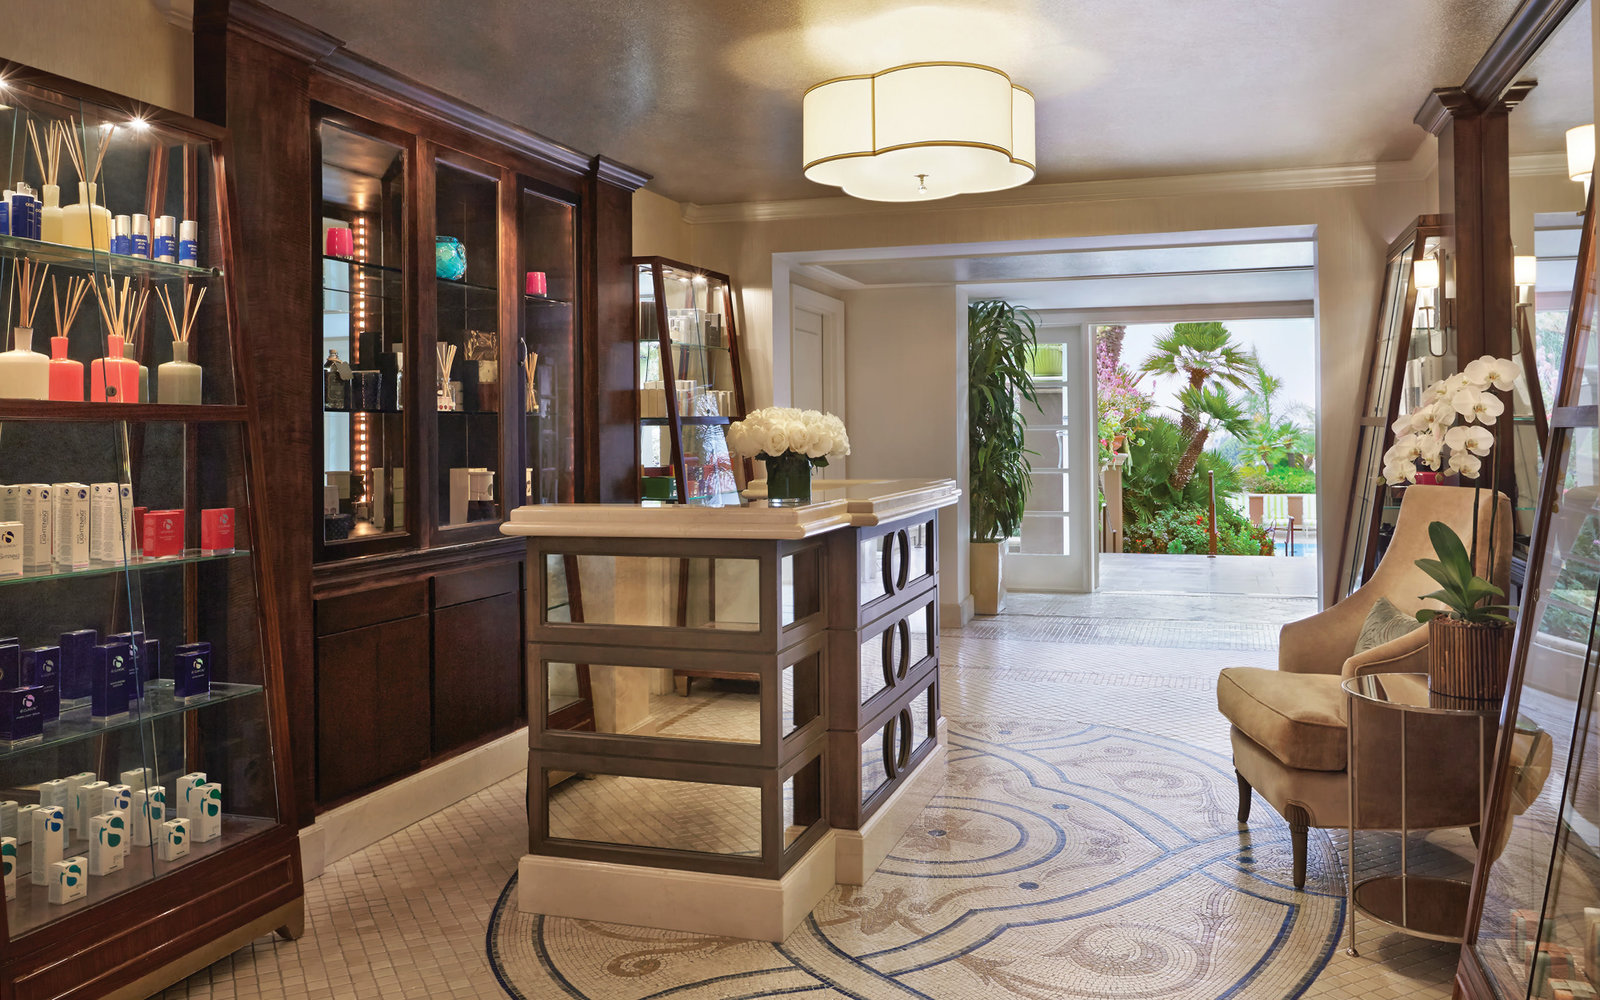 Margarita Scrub and Massage at Four Seasons Hotel Los Angeles